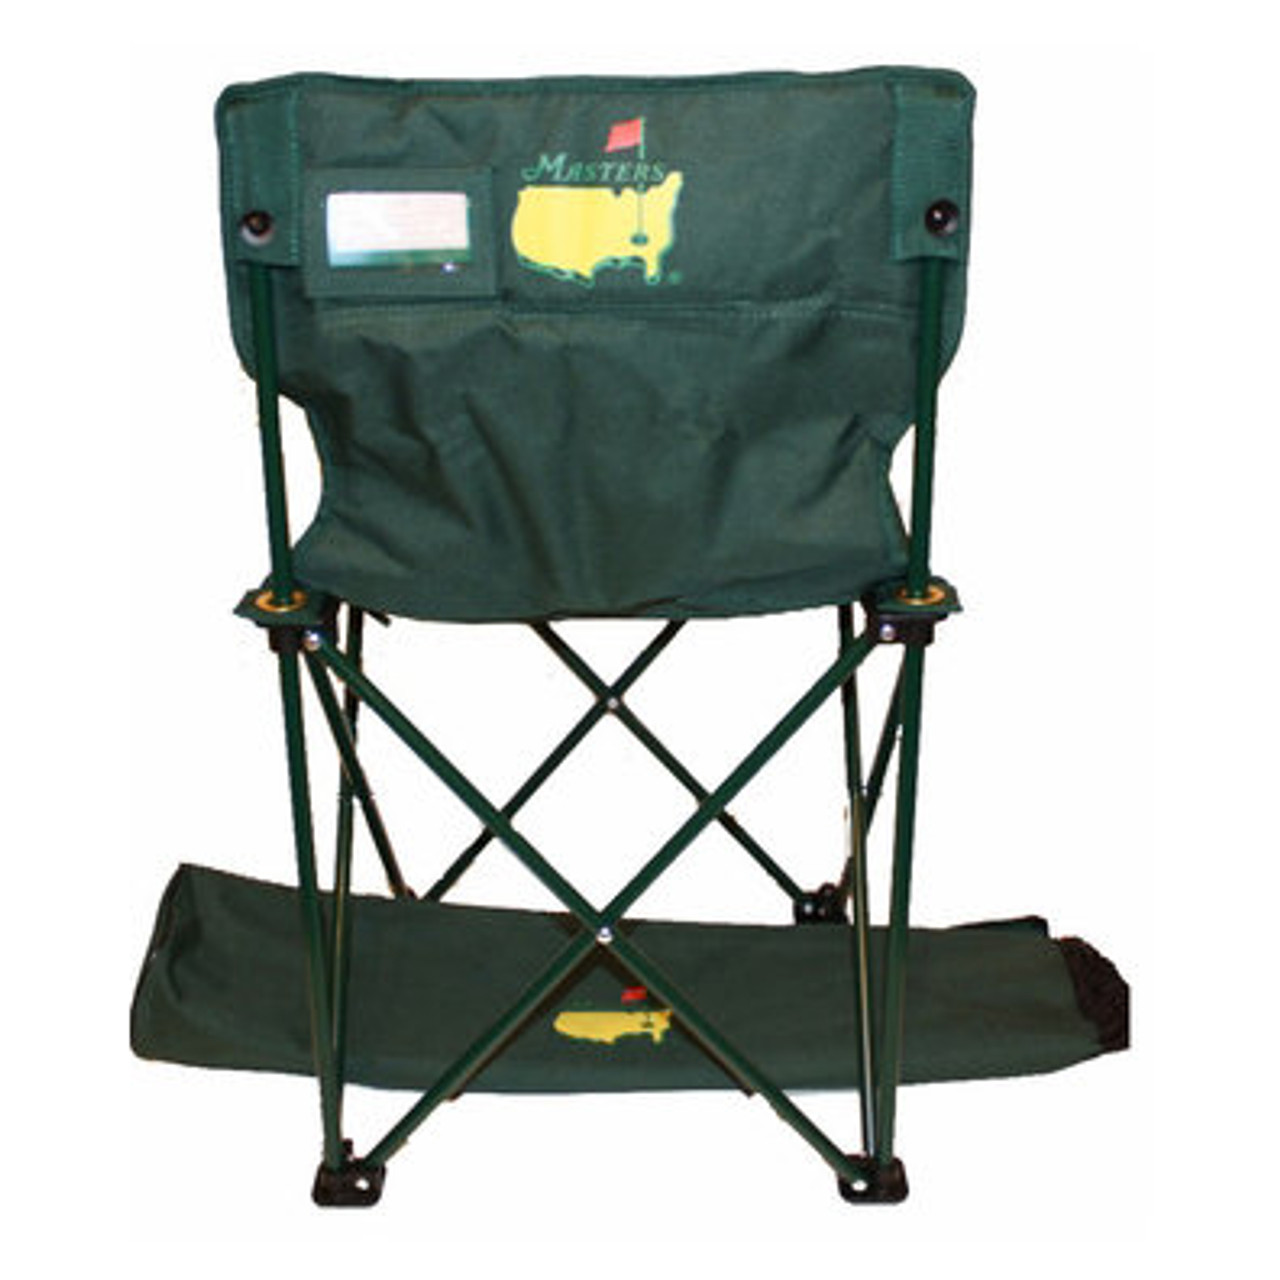 Foldable Lawn Chairs Masters Green Foldable Lawn Chair